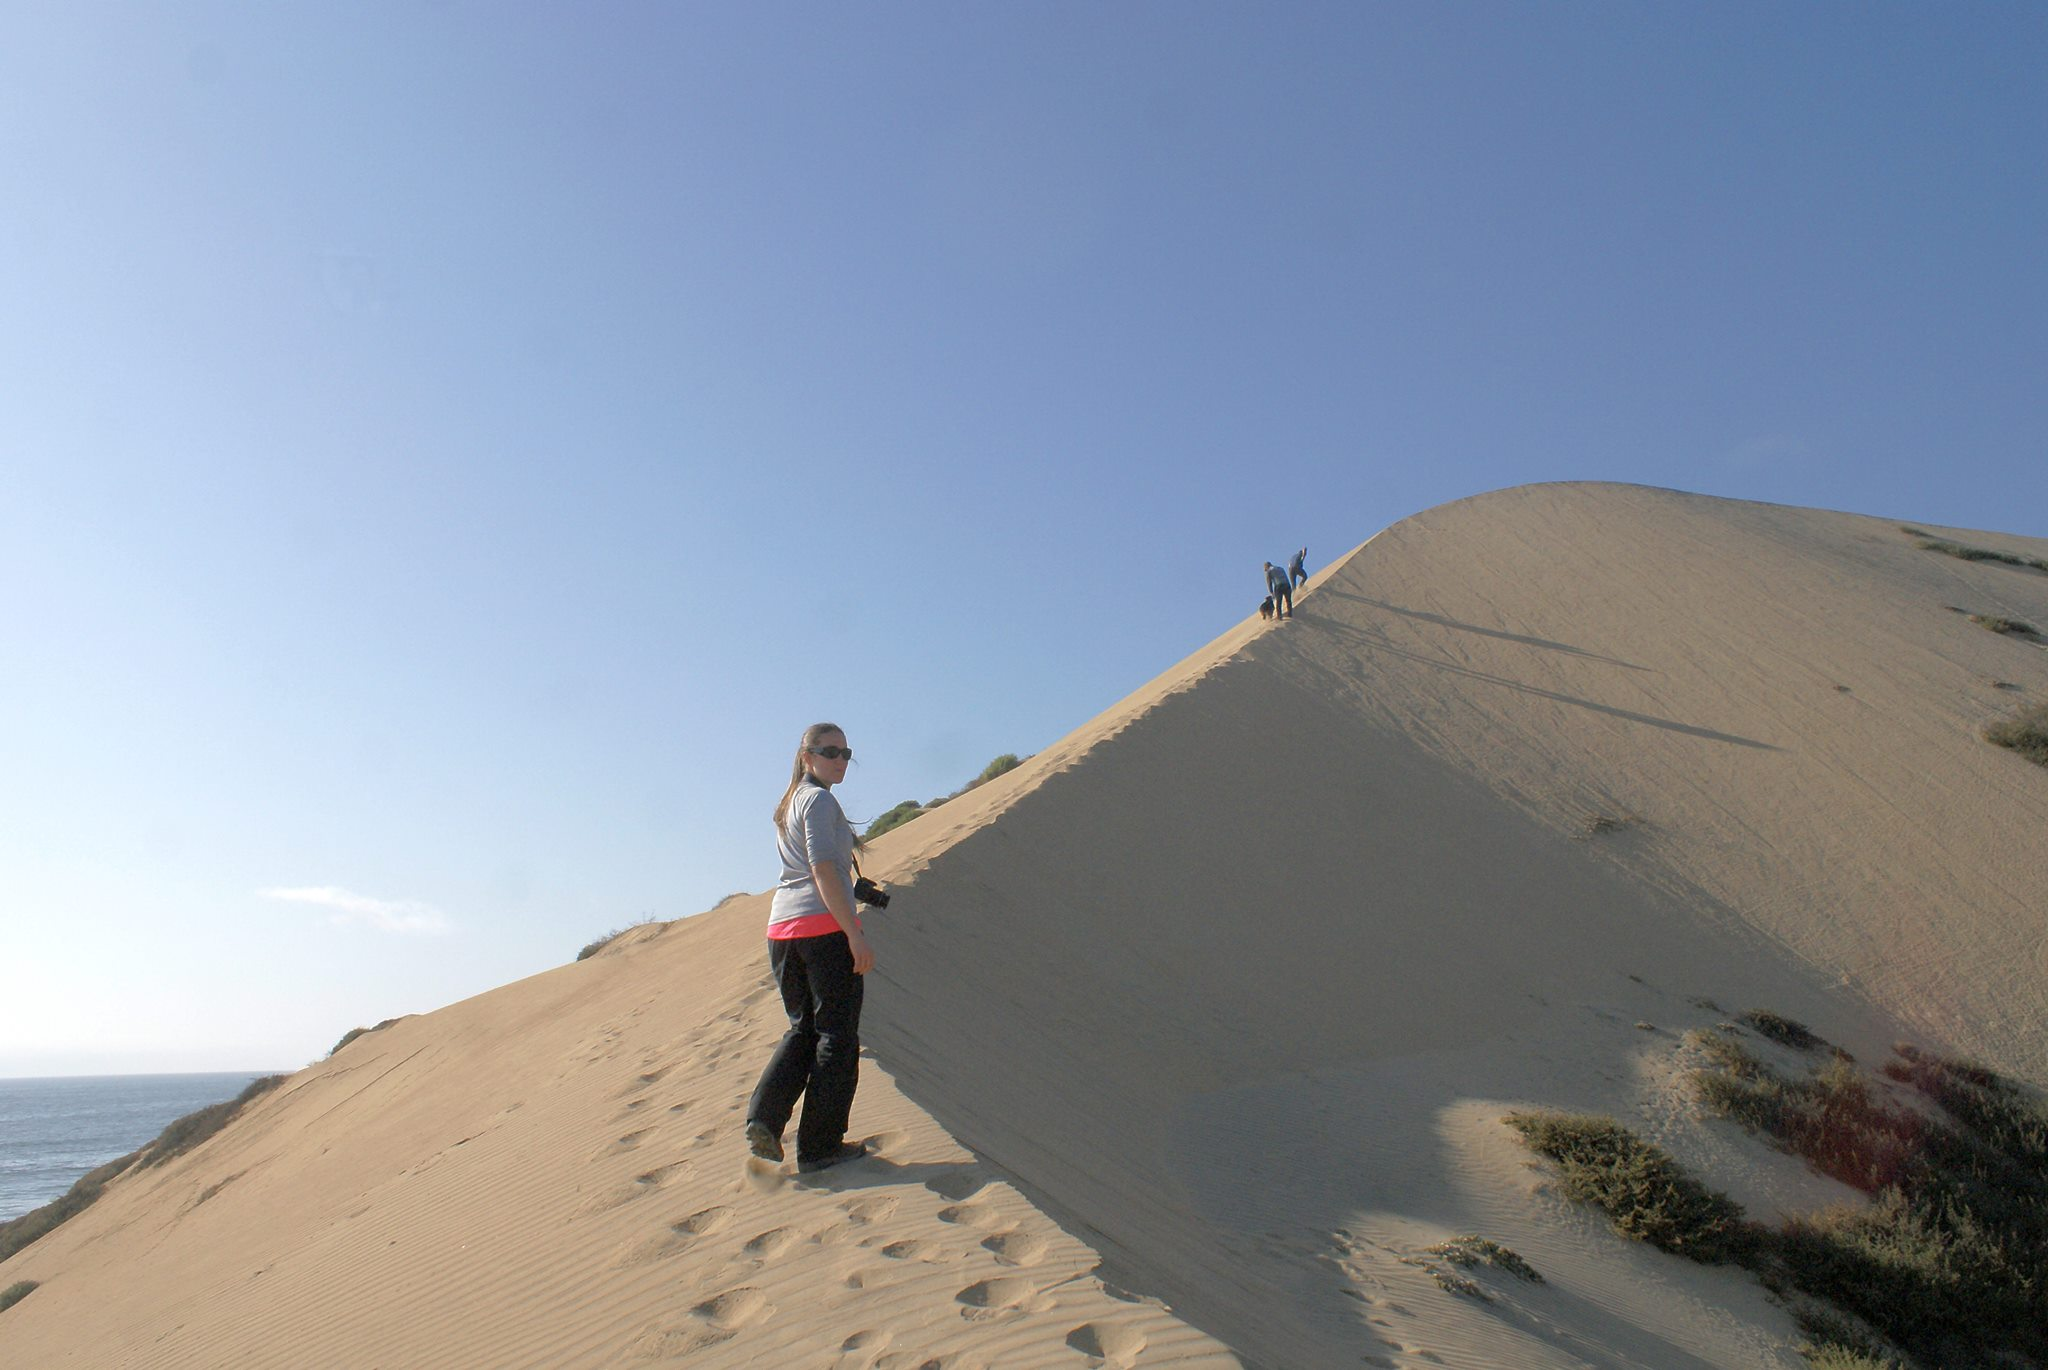 Hiking sand dunes on the way to Baja California, Mexico